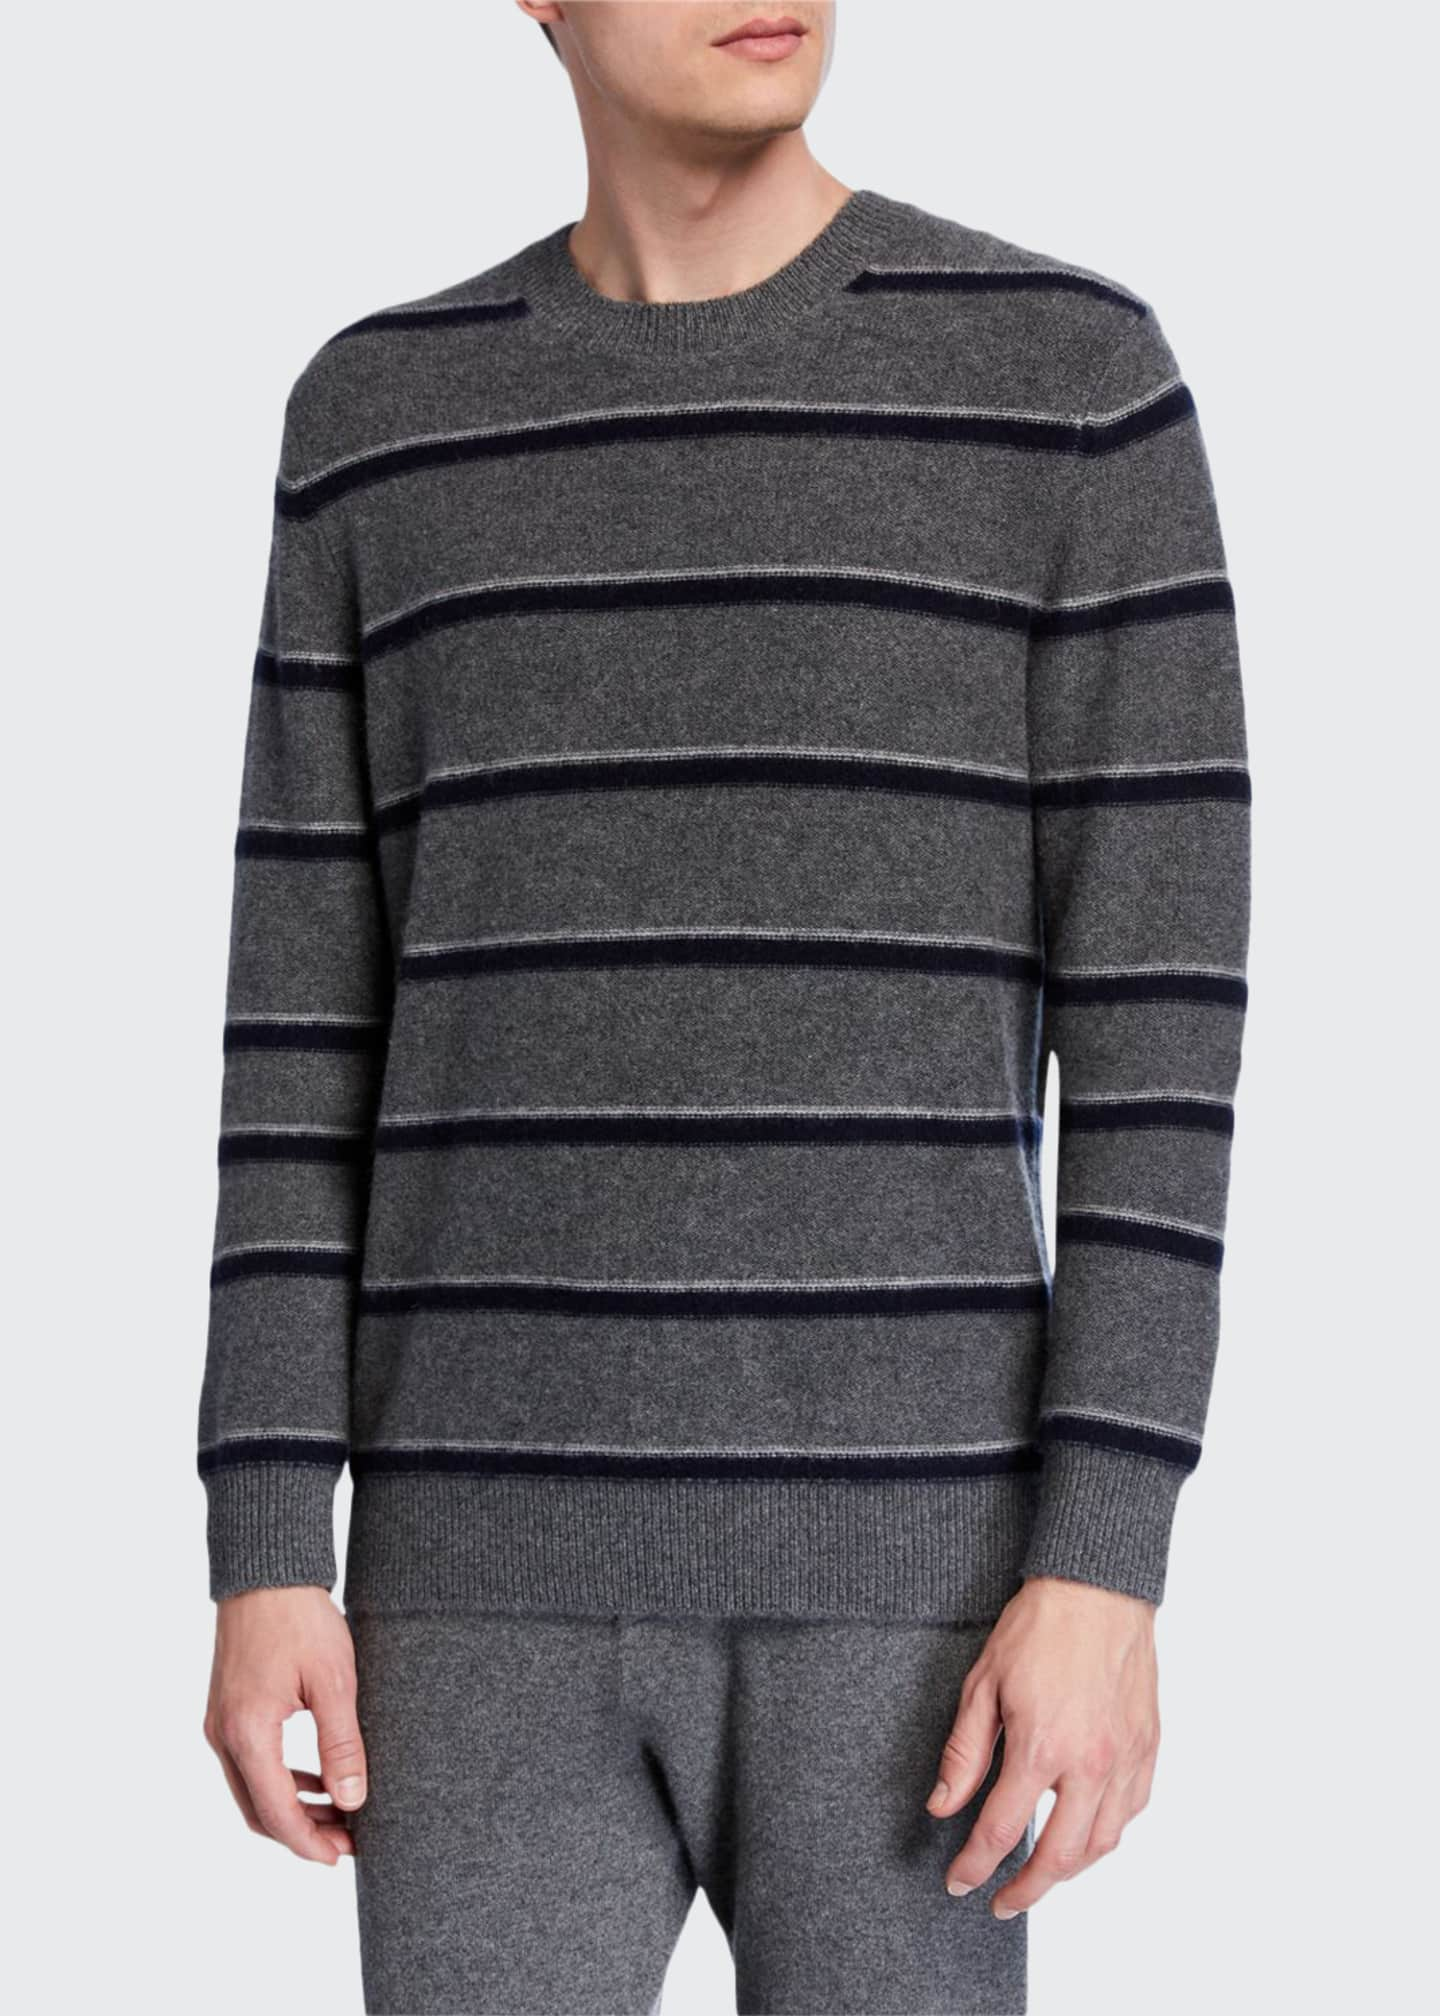 Image 1 of 2: Men's Striped Cashmere Crewneck Sweater